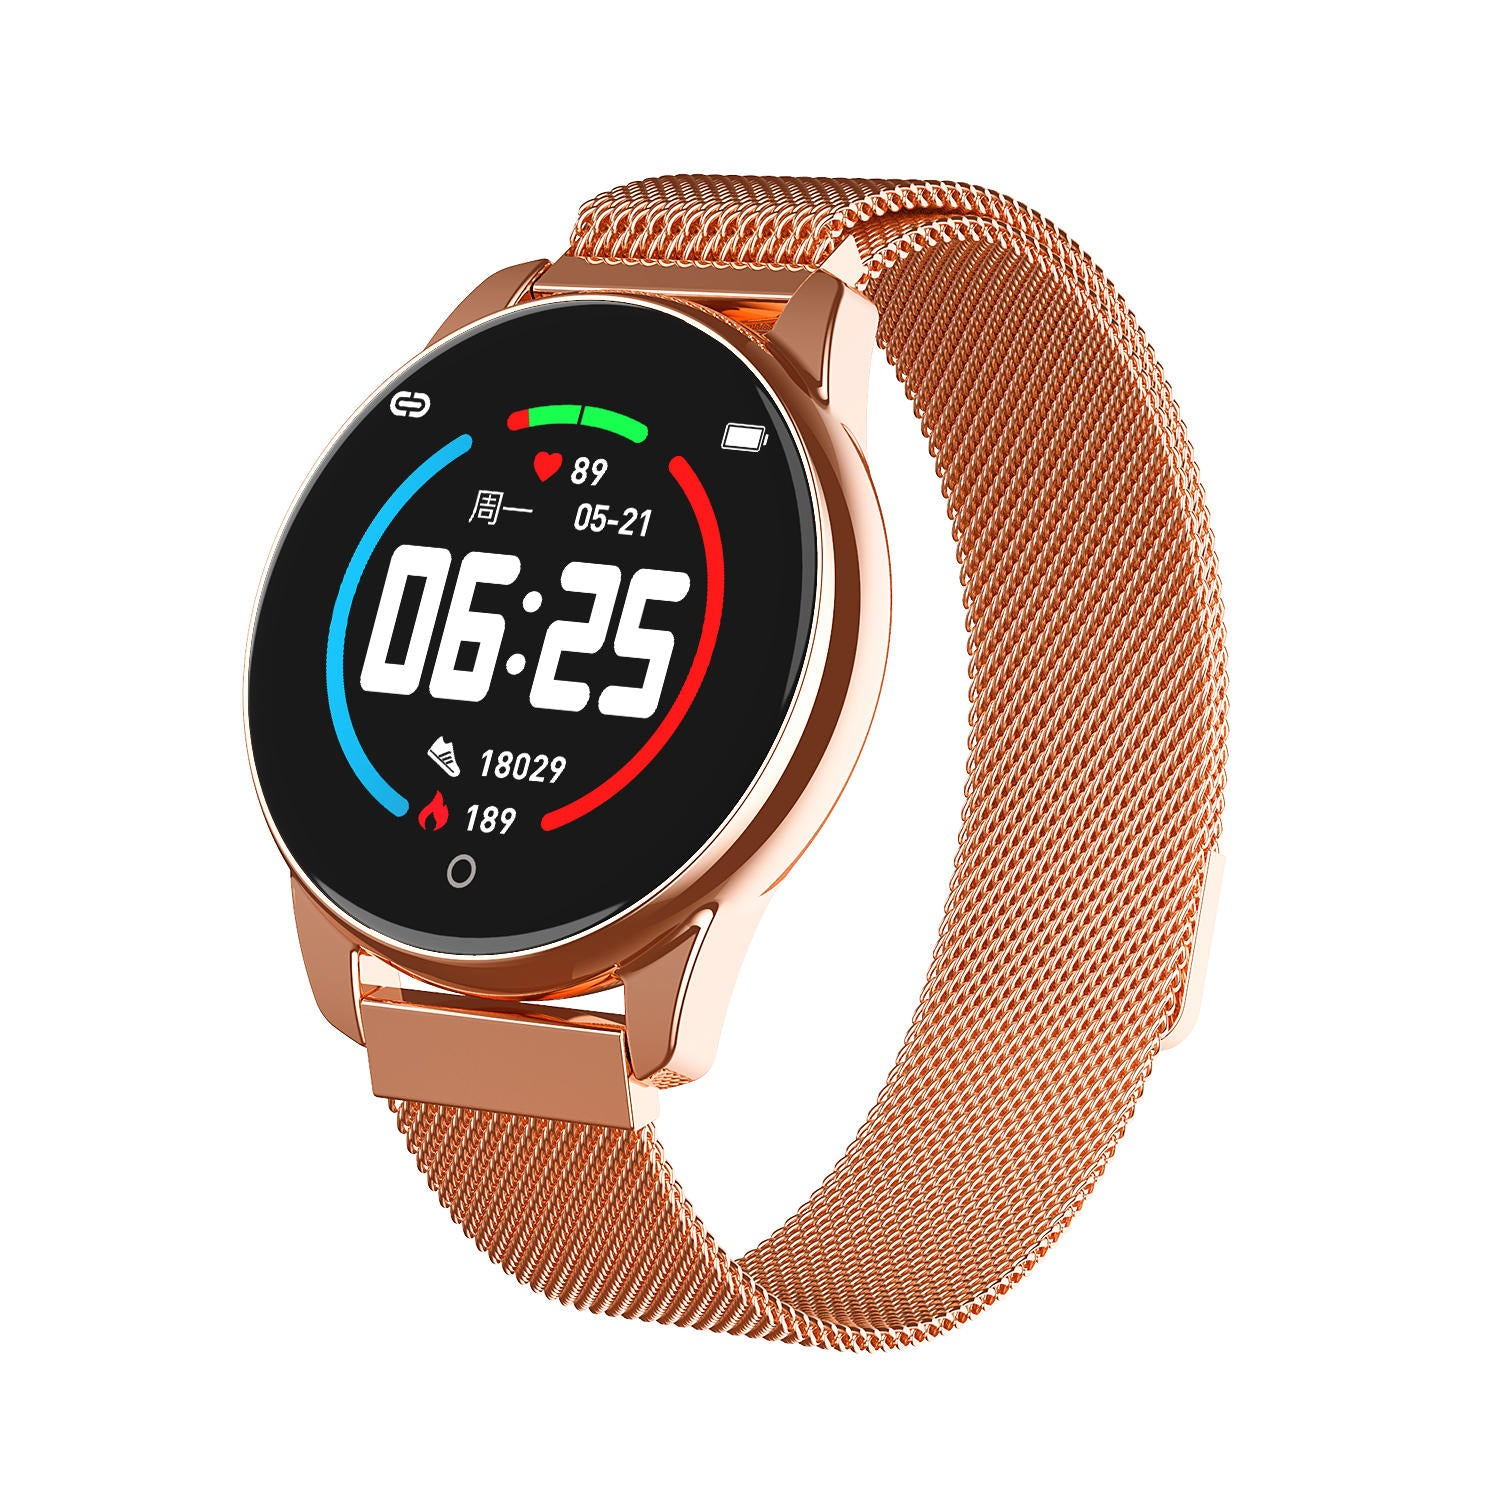 Bakeey HD Color Screen 24-hour HR Blood Pressure Monitor Remote Camera Business Style Smart Watch